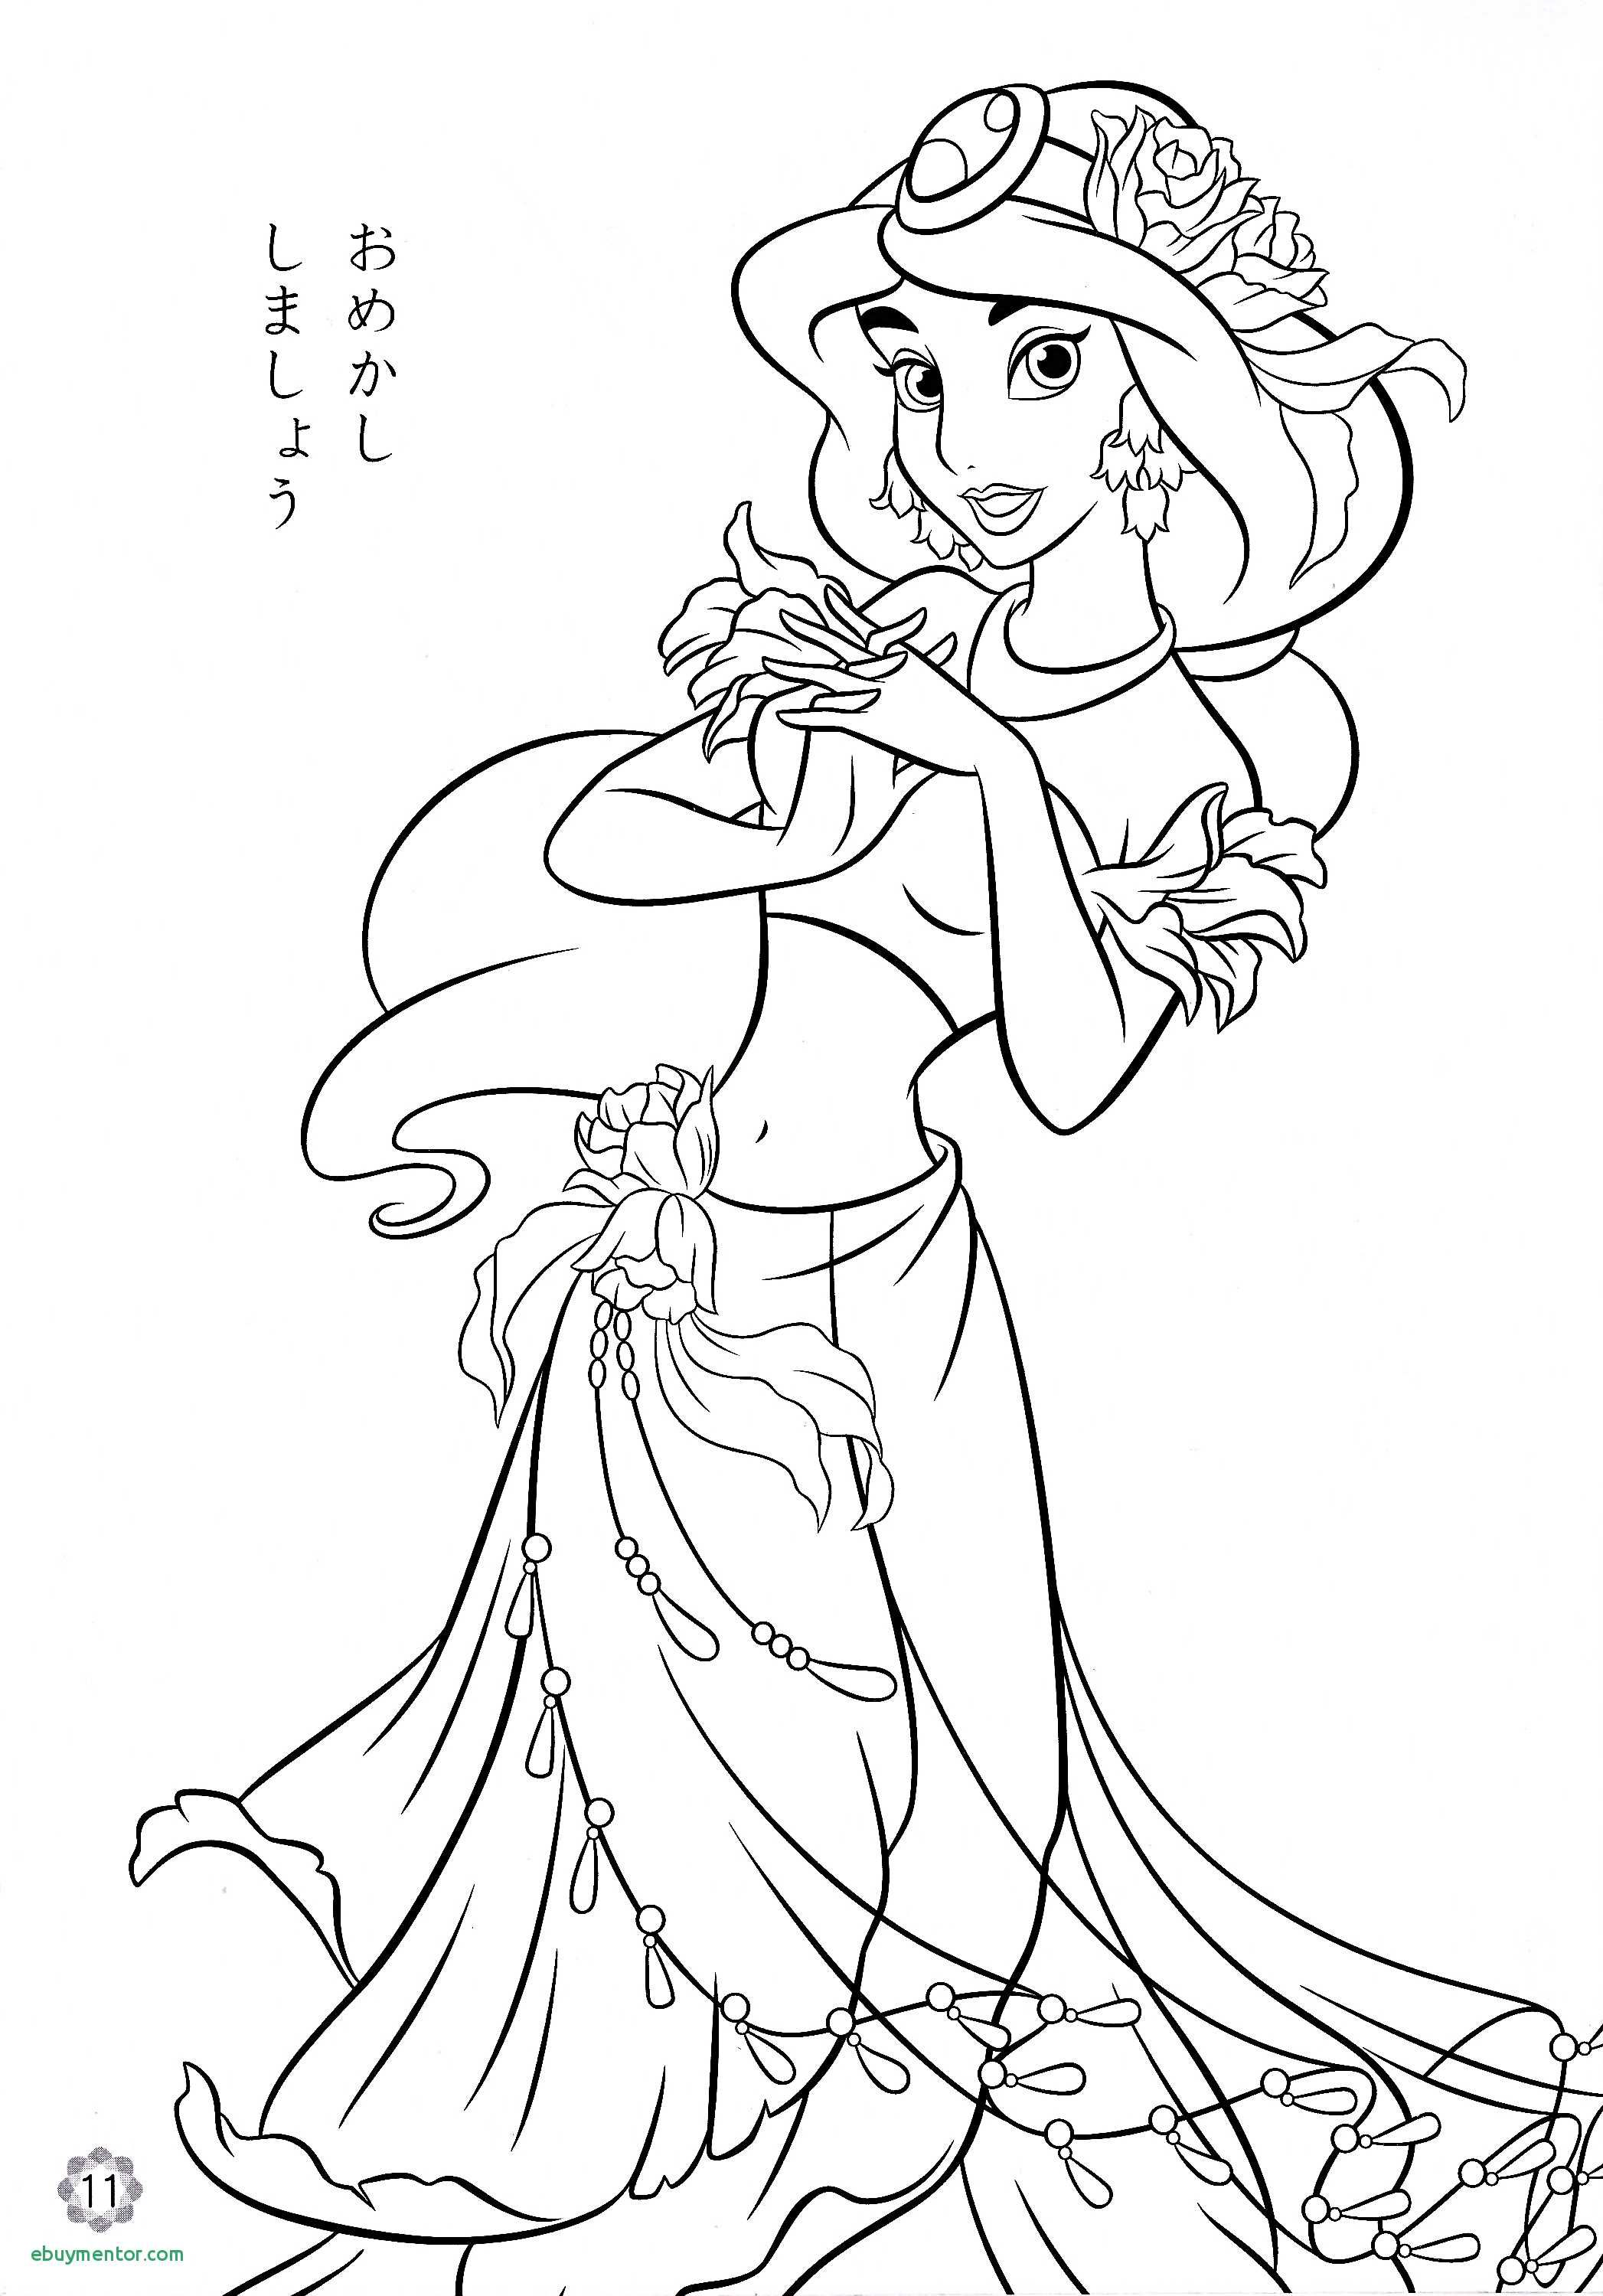 Disney Princess Coloring Pages 820 1060 Lovely Of Chibi